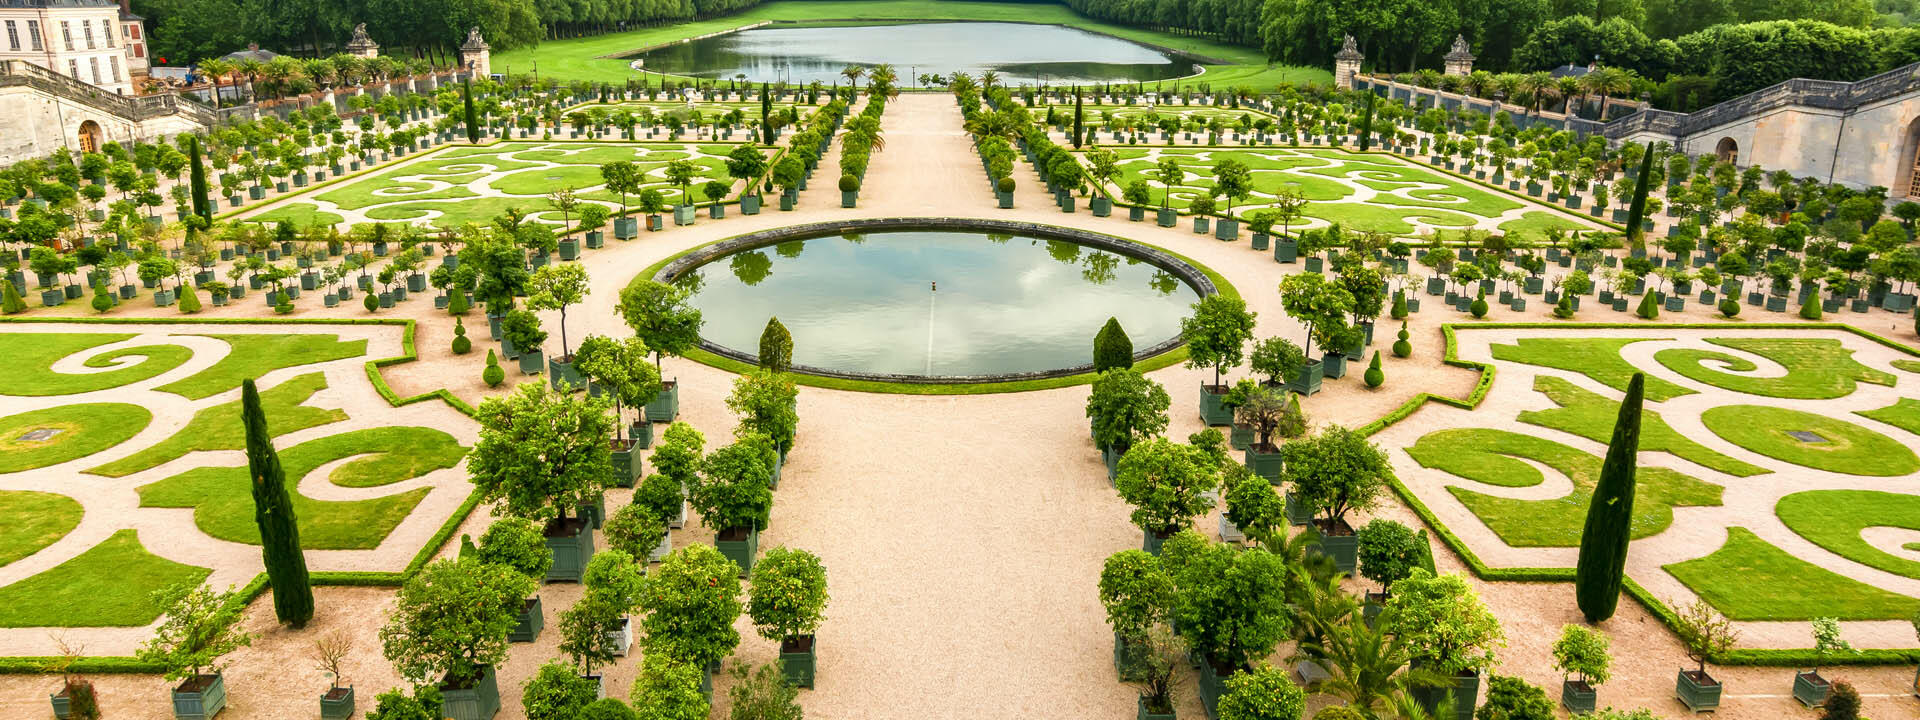 Amazing gardens near Paris you can't miss